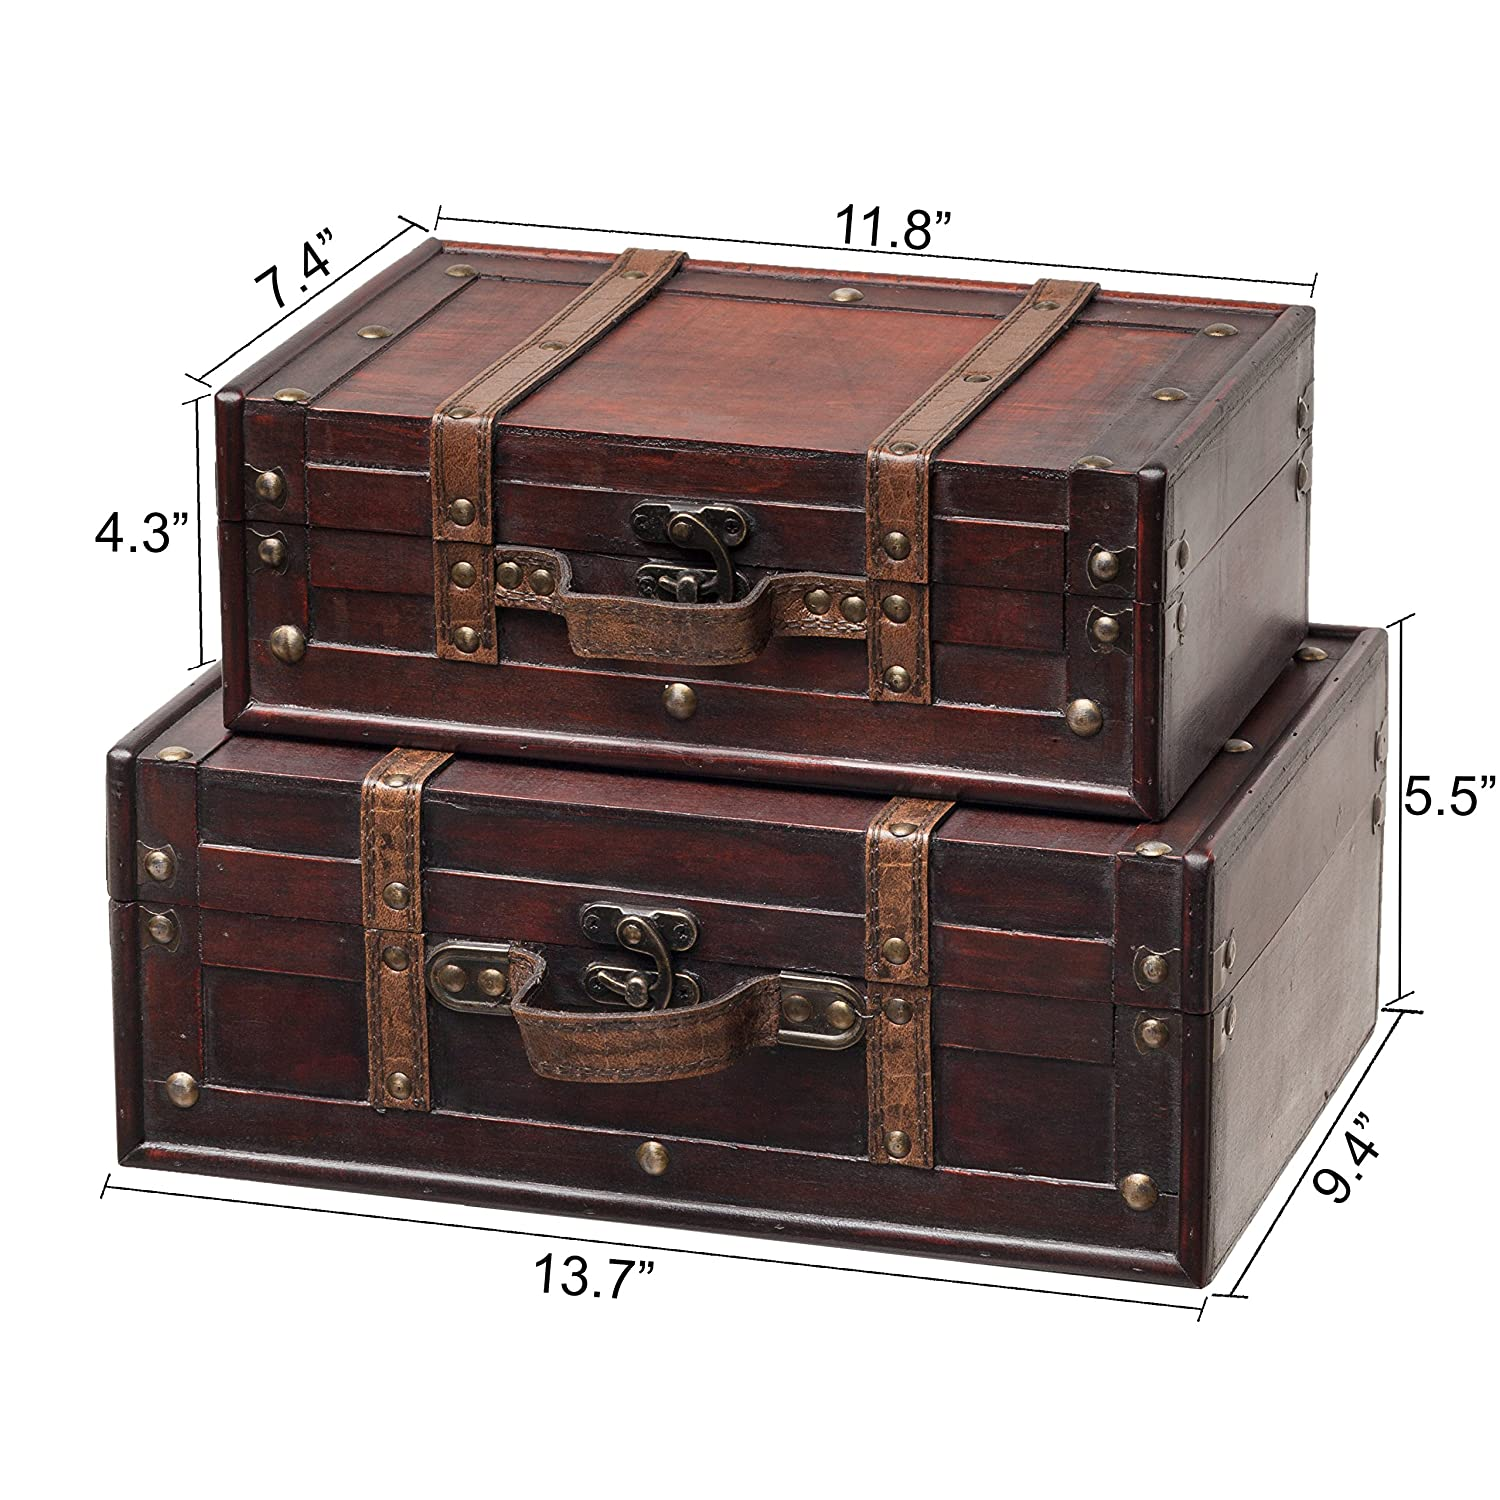 stockyard archives props and prop selection to price product boxes drawers category flight add trunks request luggage with suitcase